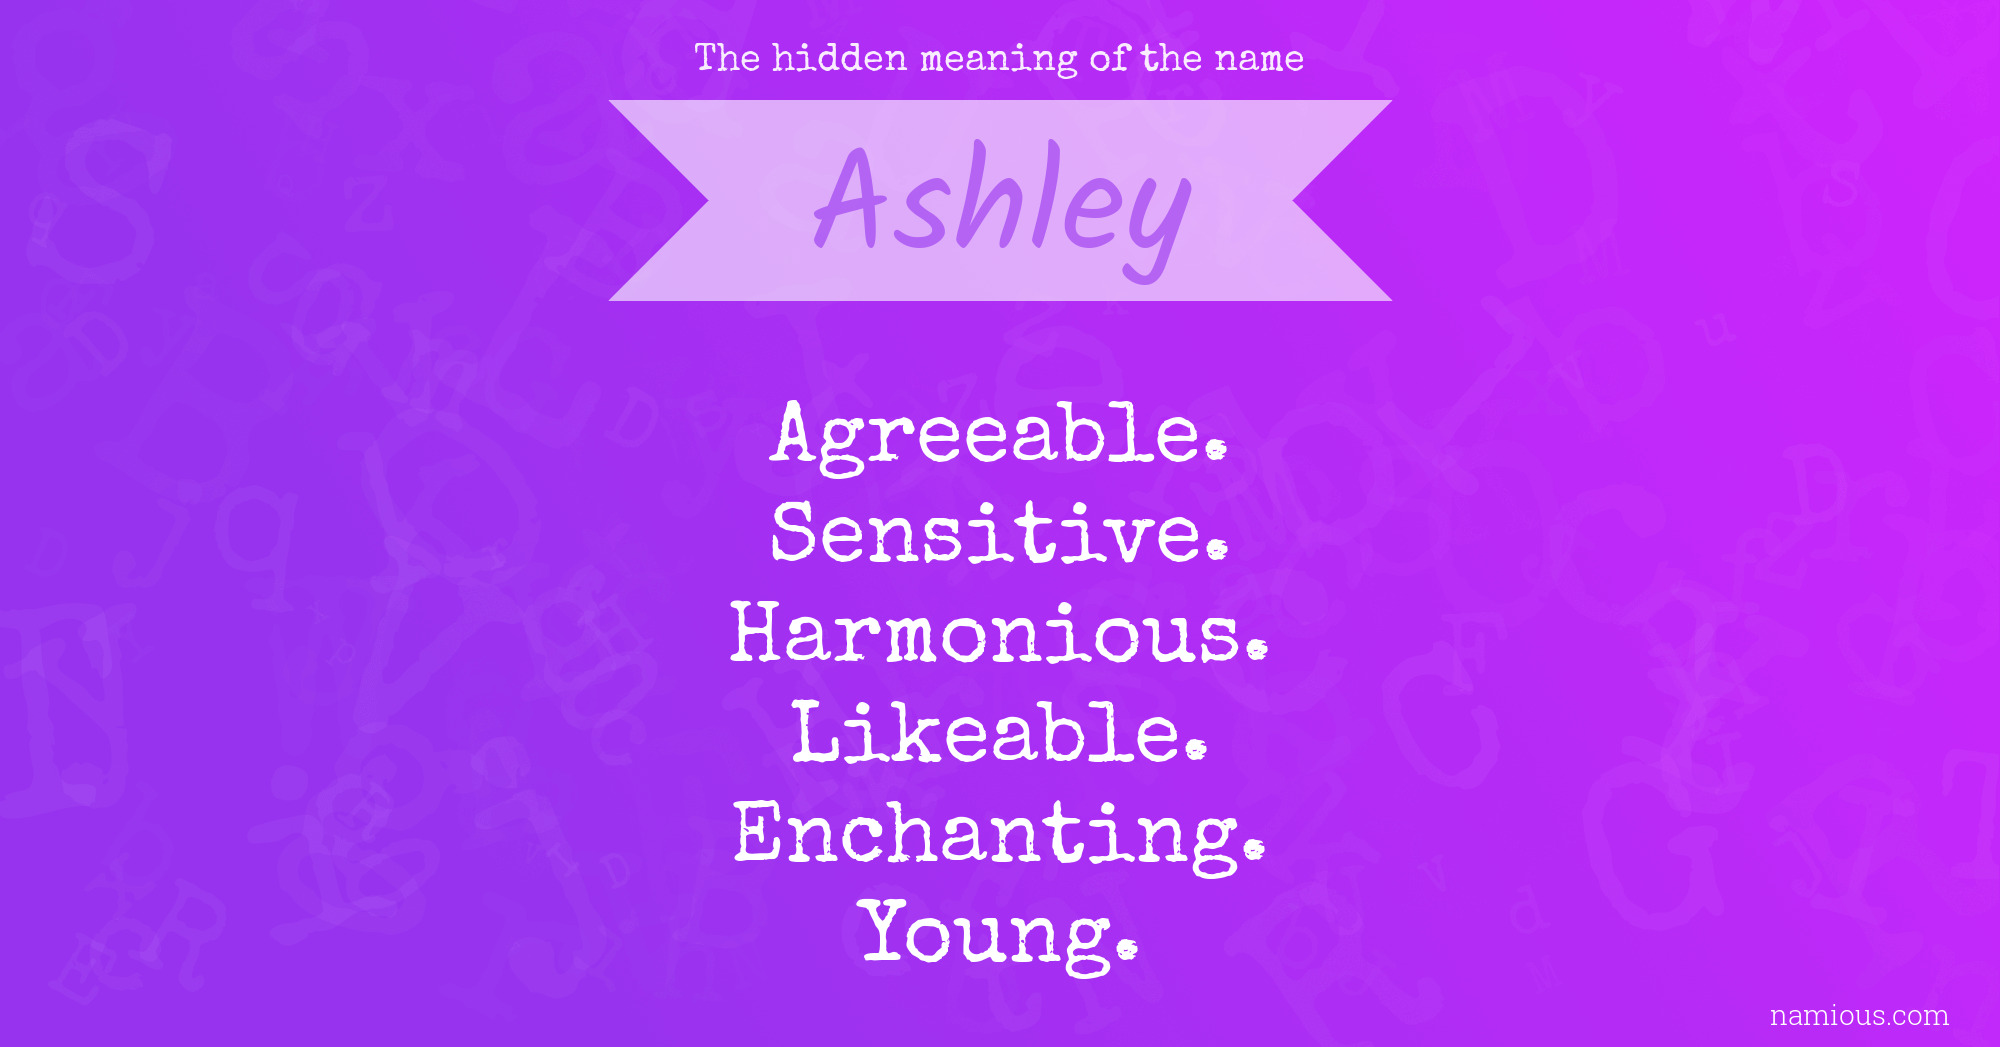 The Hidden Meaning Of Name Ashley